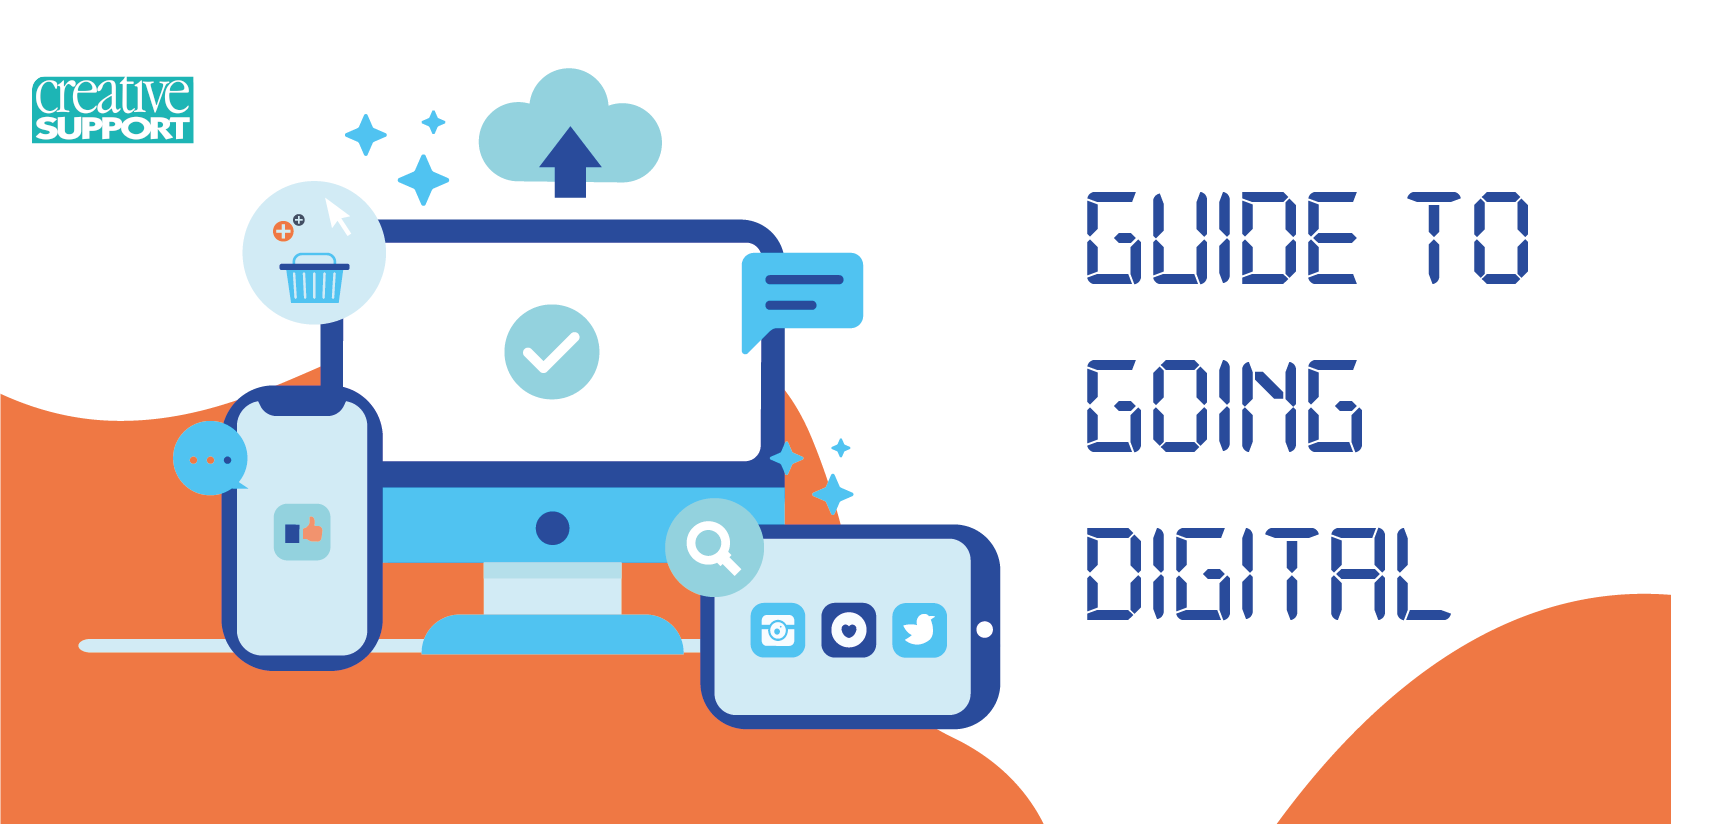 Creative Support's Guide to 'Going Digital'